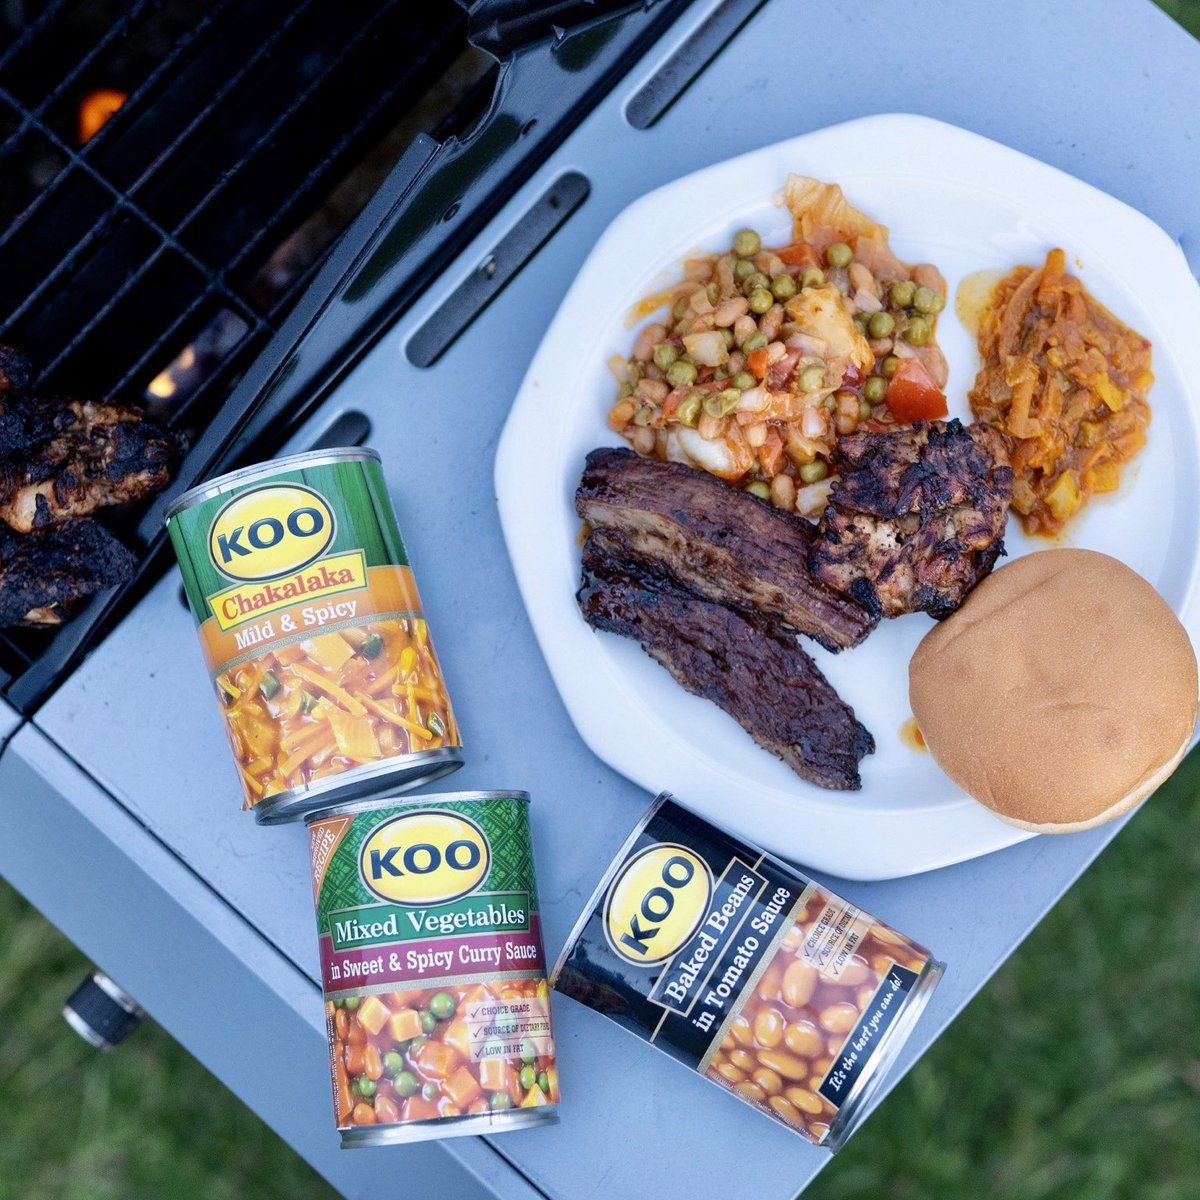 Is it really a braai without amaSides? Braaid meat and KOO chakalaka were meant to be together! What are your favorite Braai sides? #DishUpMoreLove #Sisonke #ad https://t.co/KRyAxhtztz